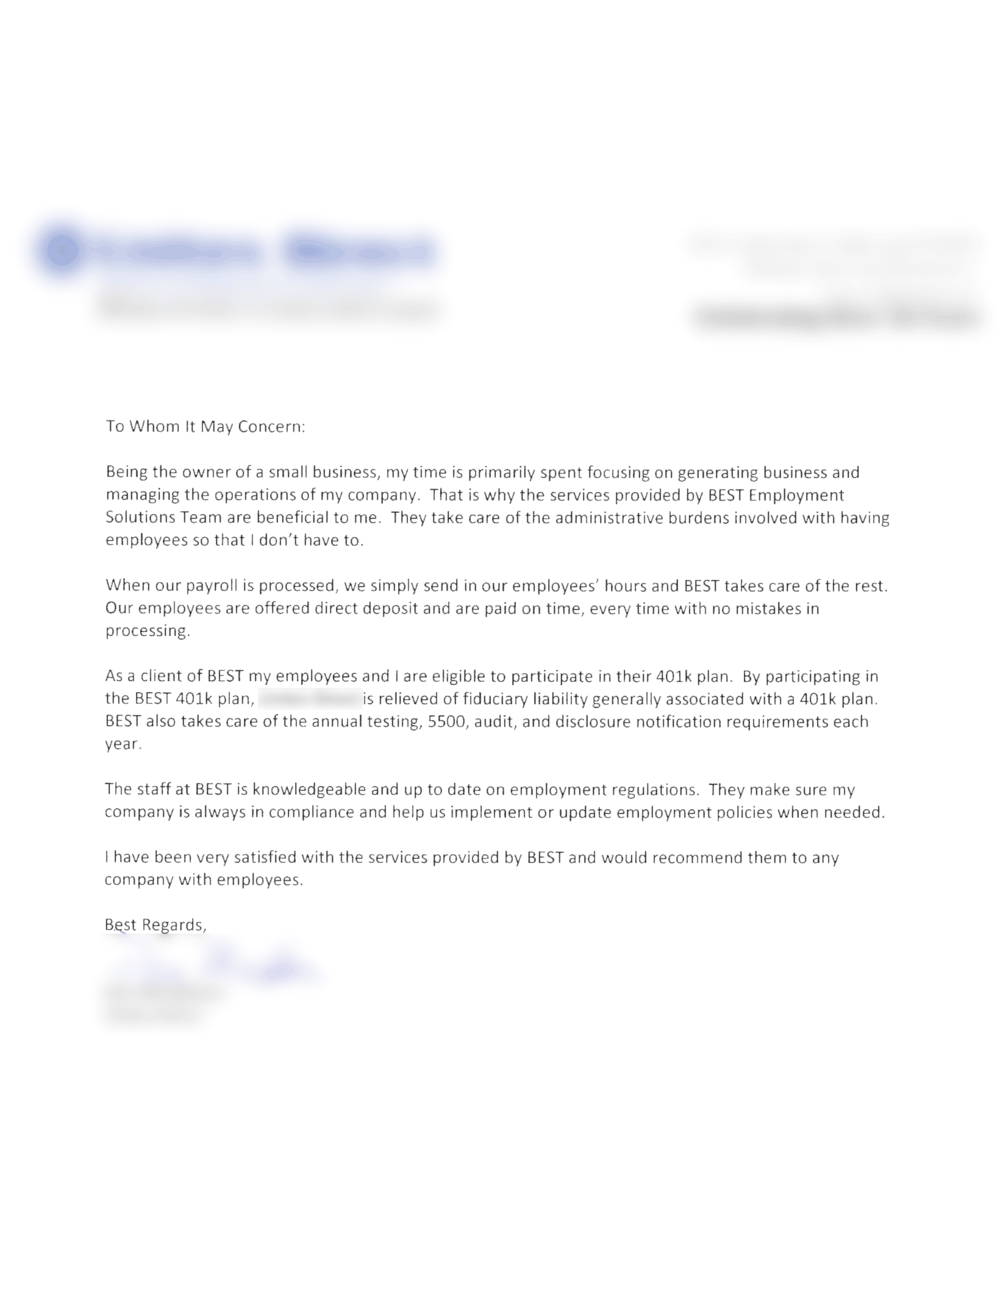 Unitex-Signed-Referral-Letter.png